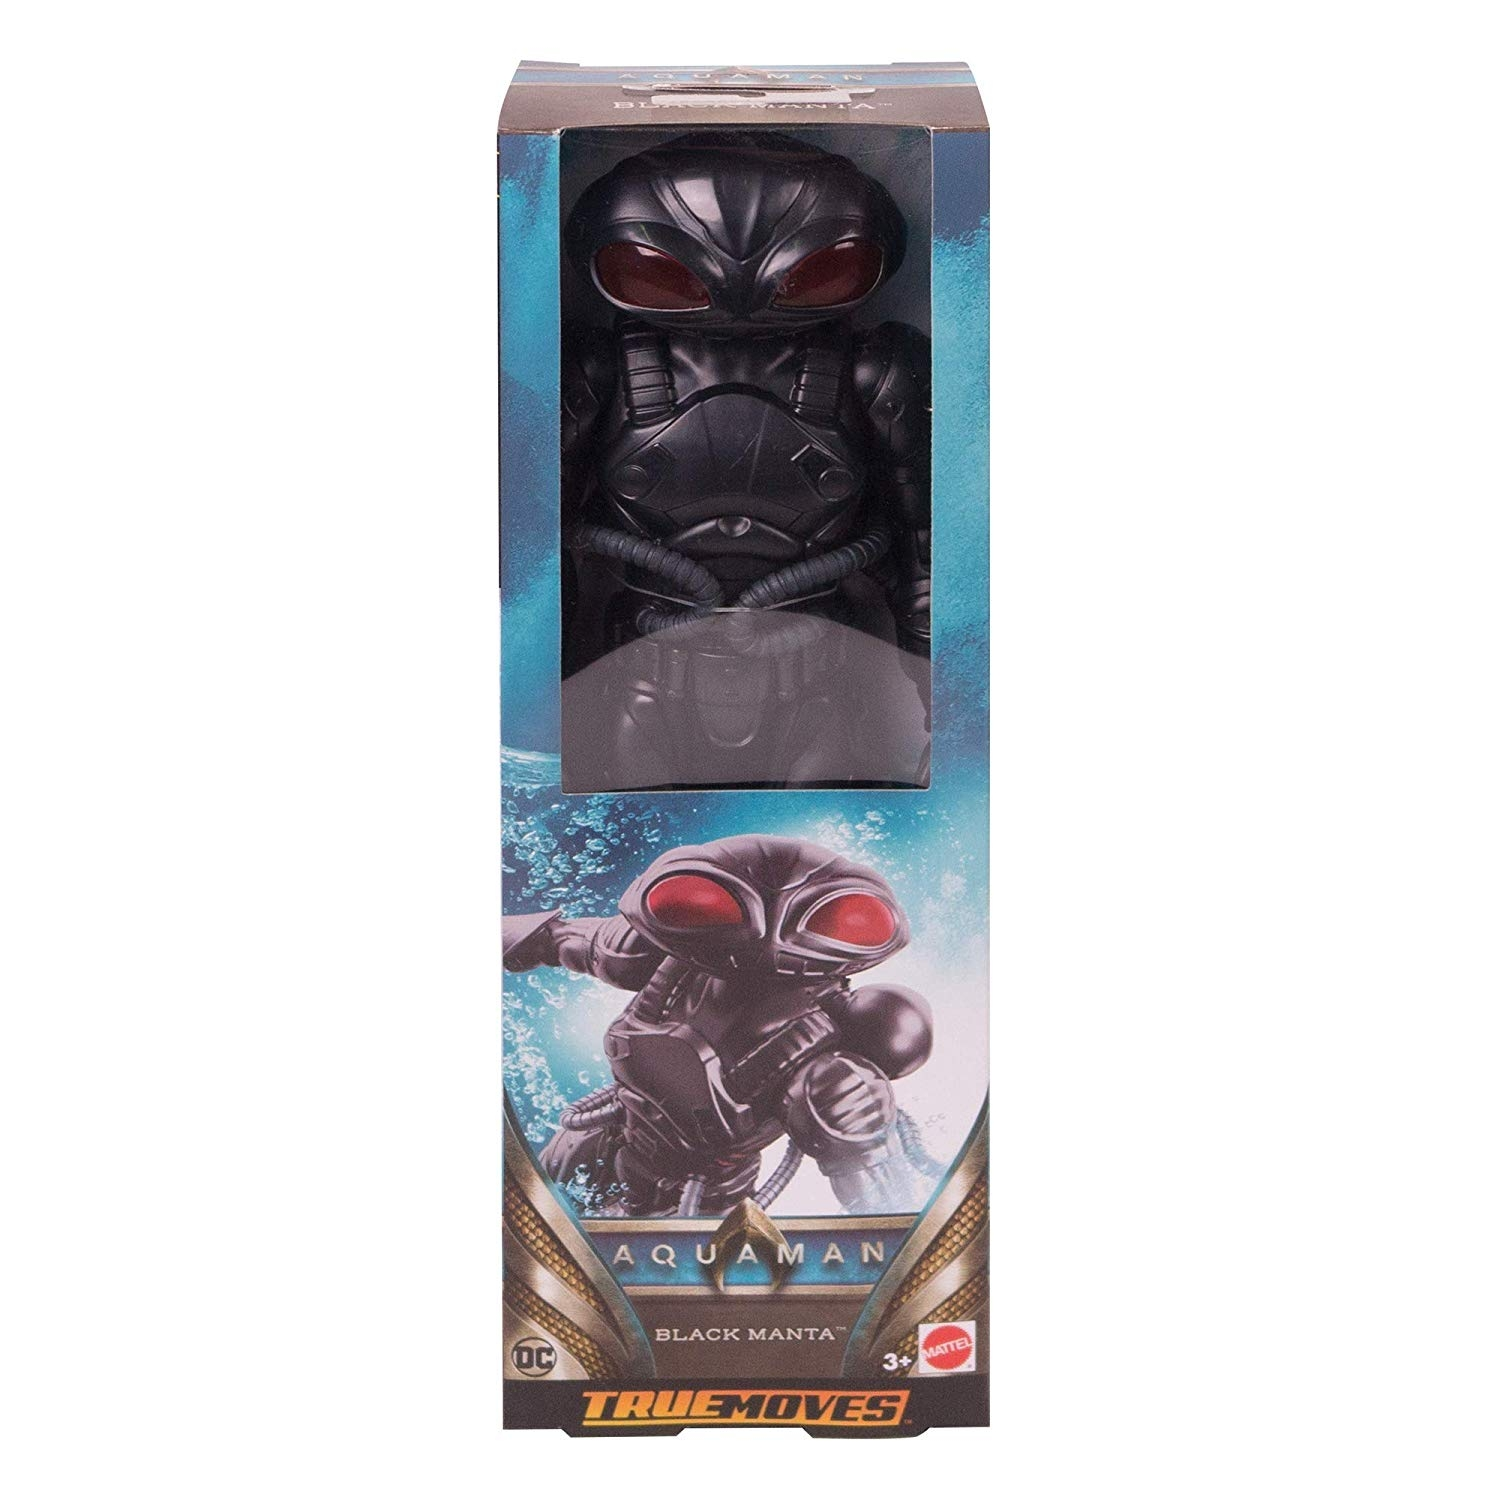 AQUAMAN TRUE-MOVES BLACK MANTA 12 Inch Figure